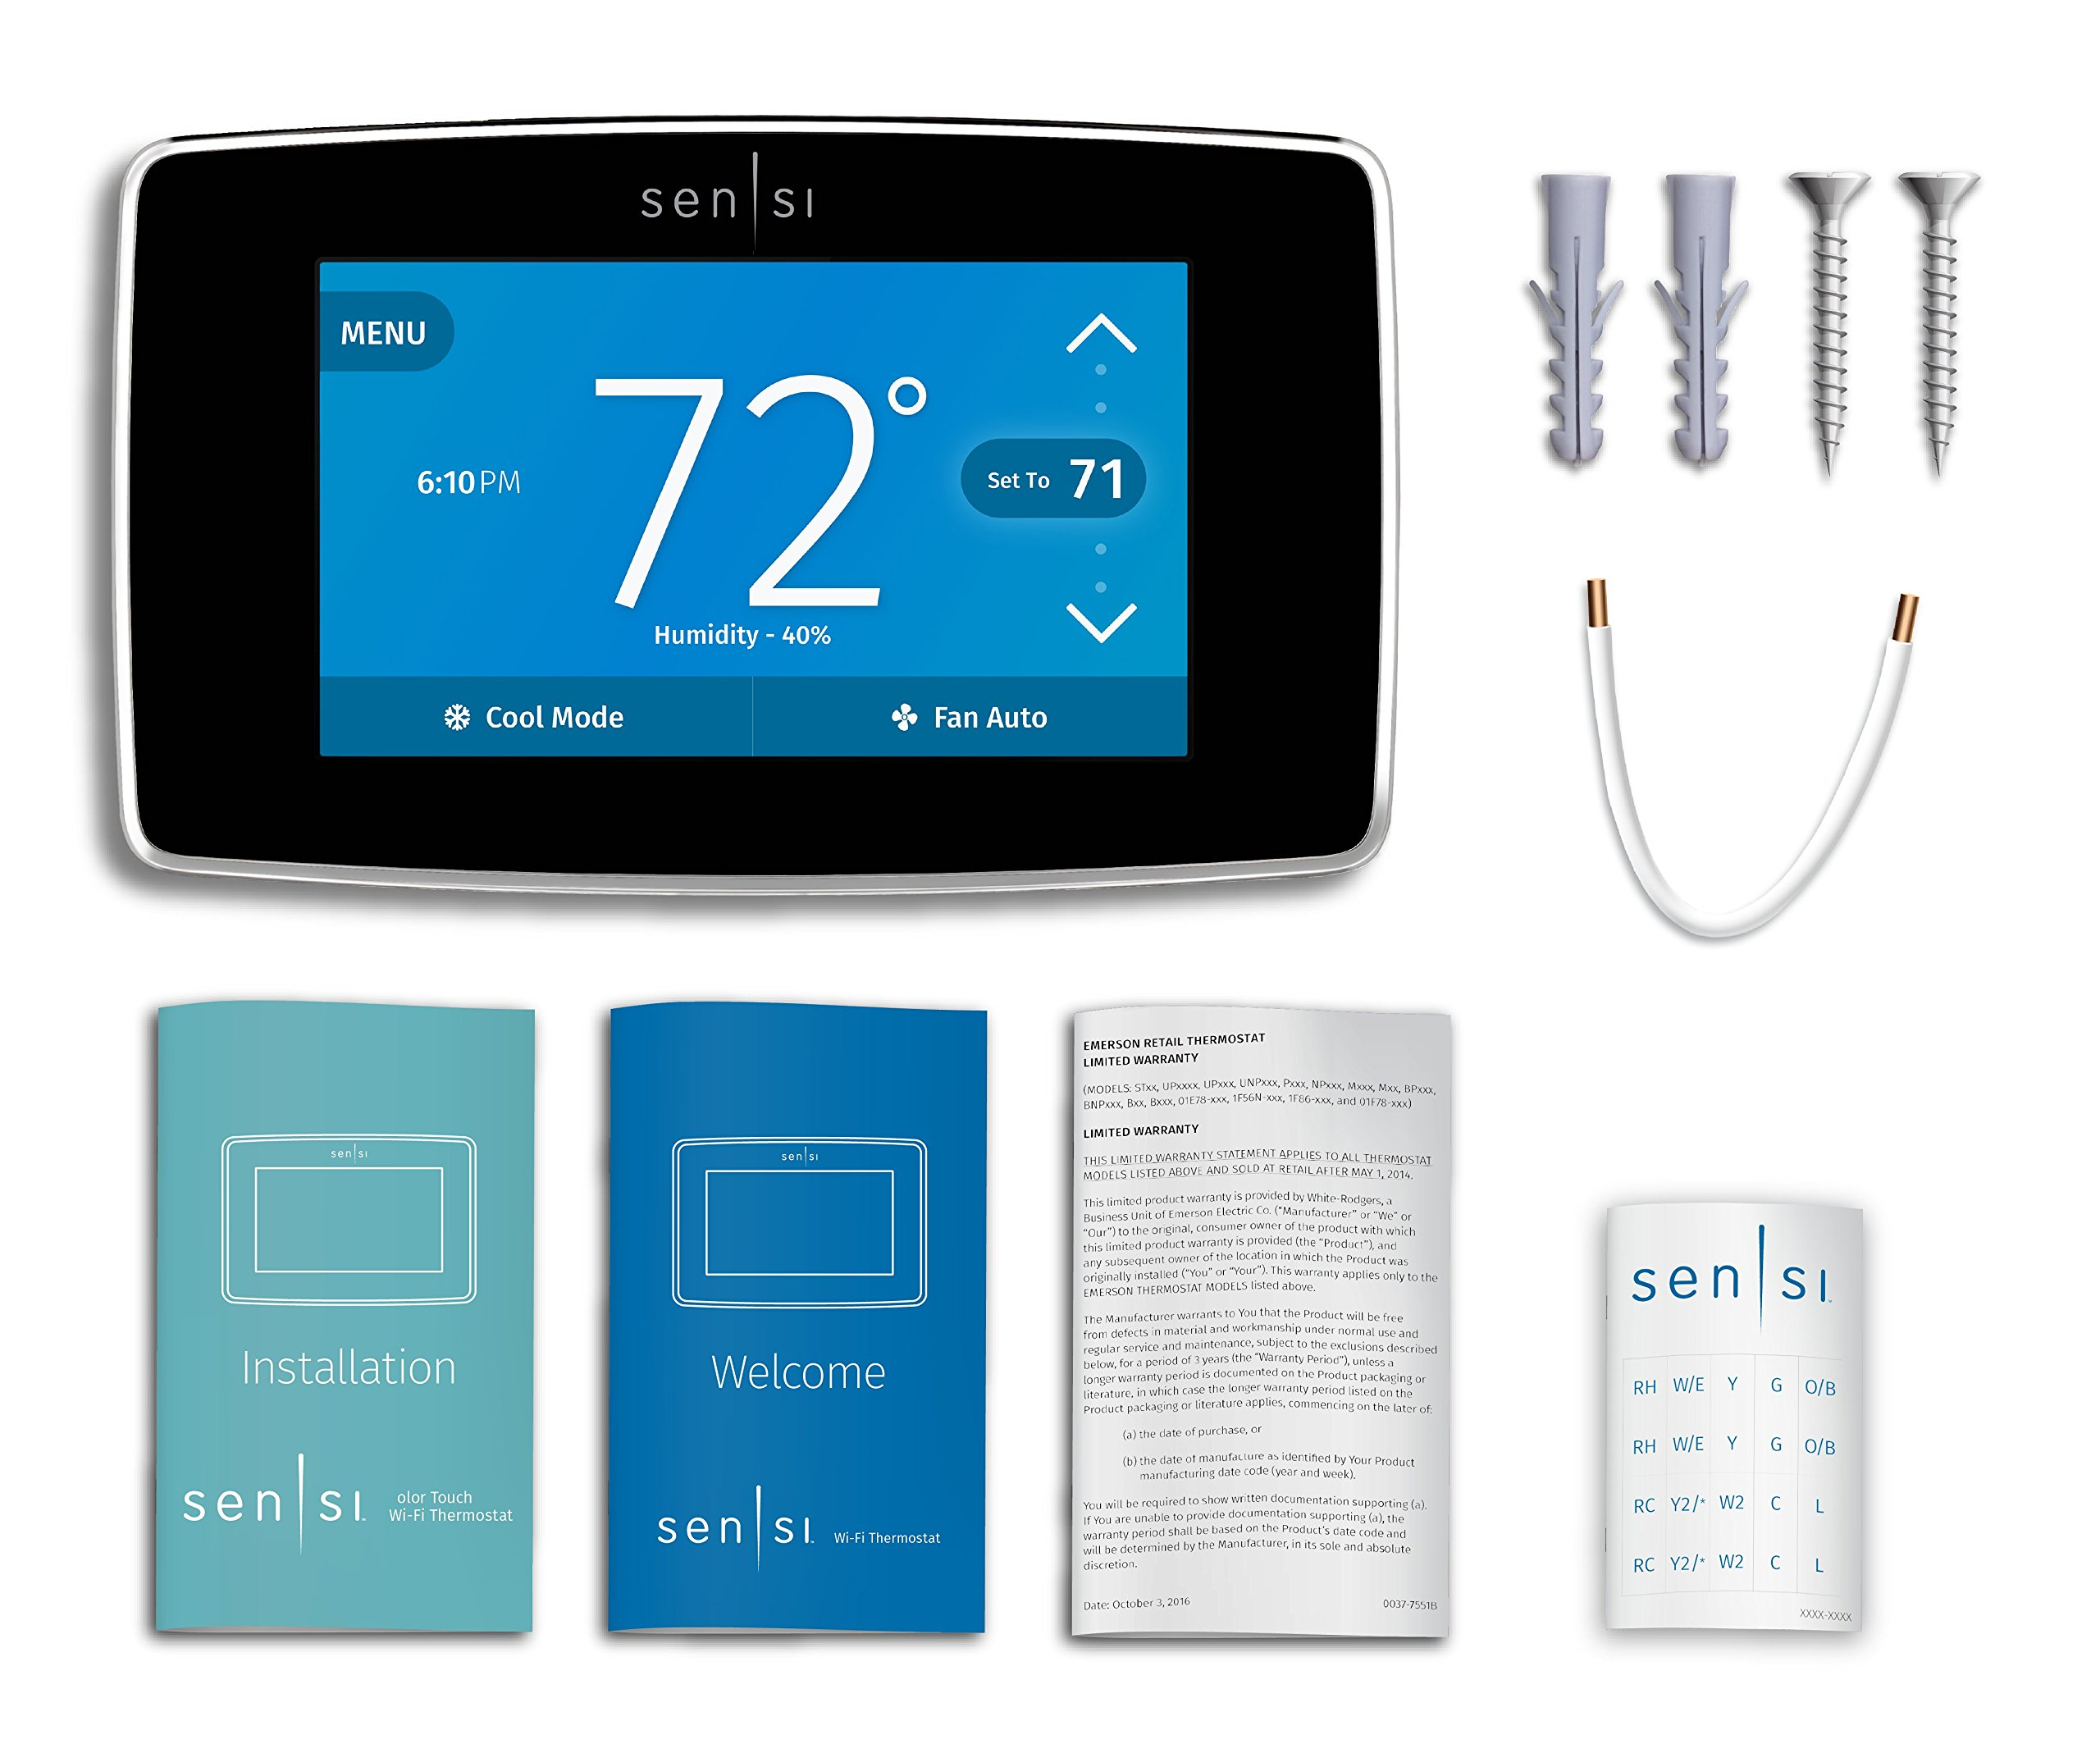 Emerson Sensi Touch Wi-Fi Thermostat with Touchscreen Color Display for Smart Home, ST75, Works with Alexa by Emerson Thermostats (Image #12)